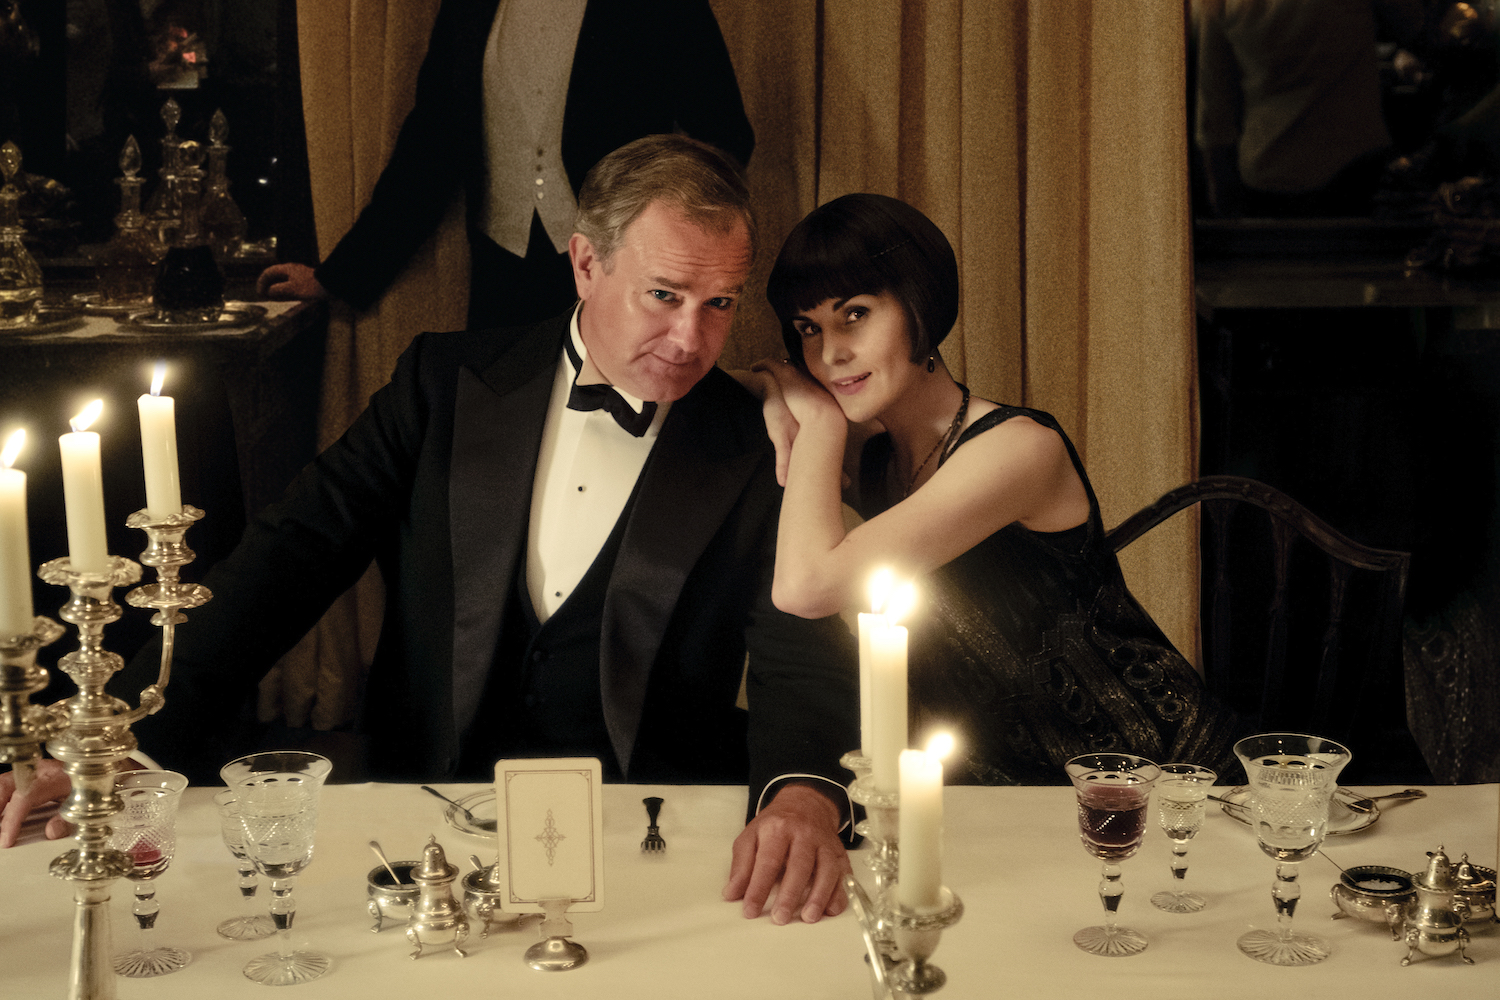 downton abbey cast members dating